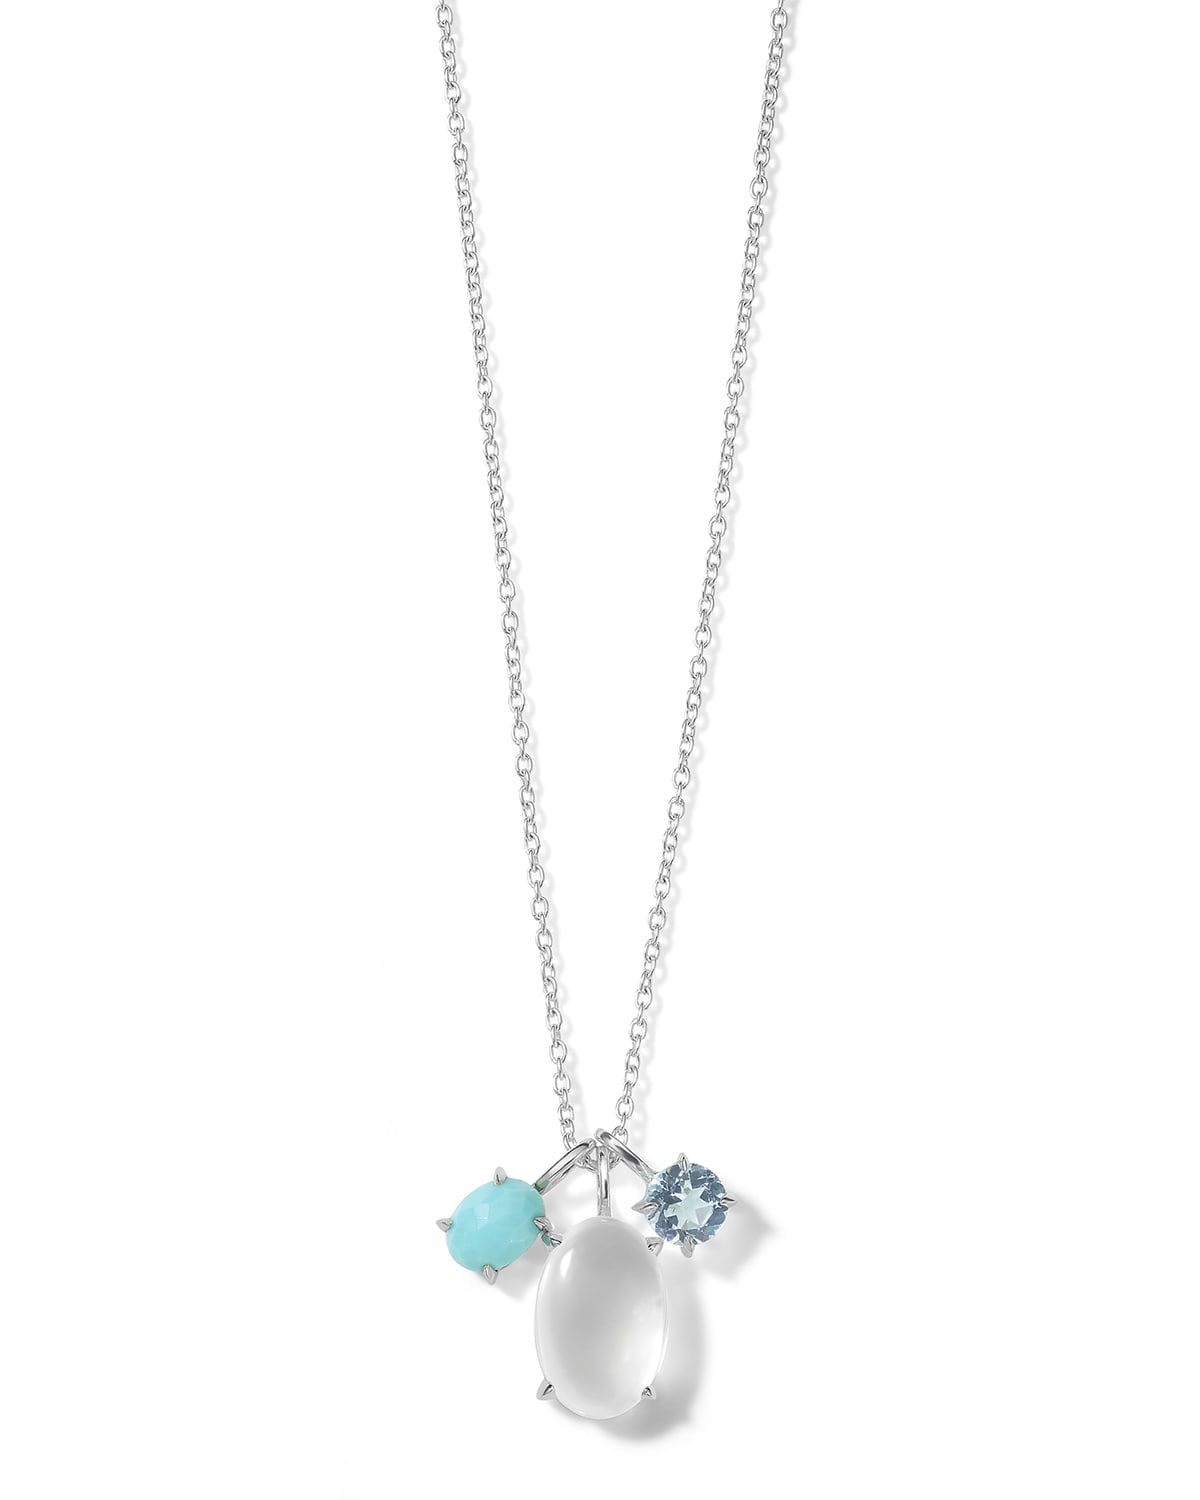 Rock Candy Luce 3-Pendant Necklace in Cascata